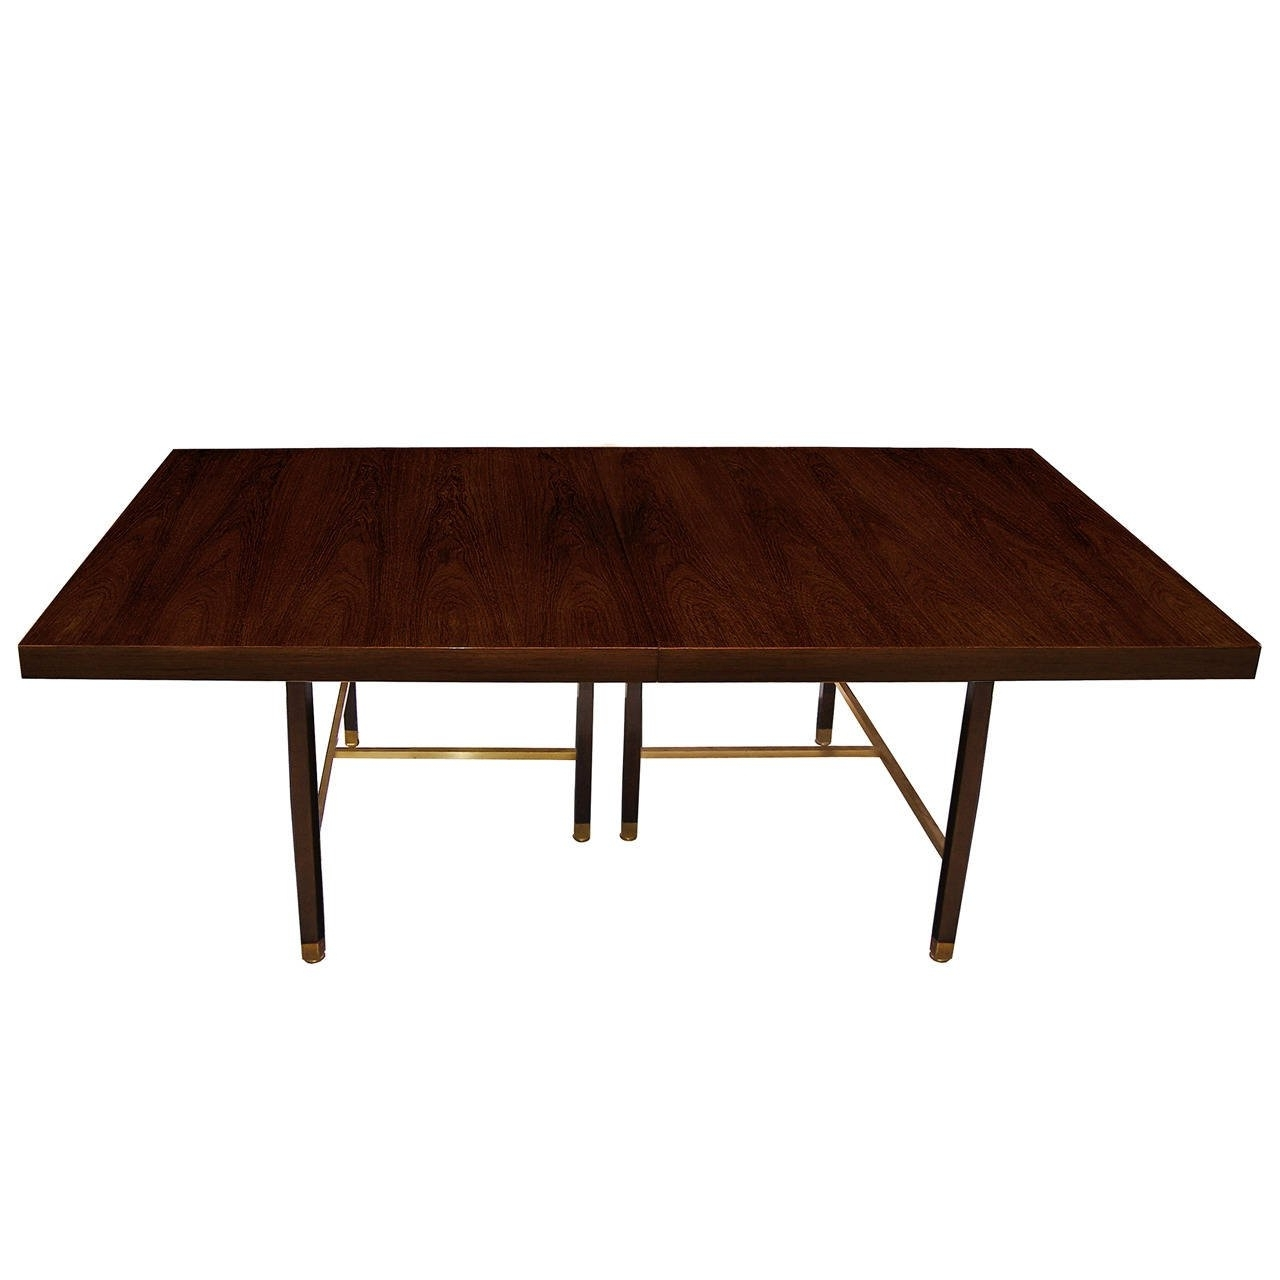 Favorite Rosewood And Brass Dining Tableharvey Probber For Sale At 1Stdibs Within Harvey Dining Tables (View 6 of 25)